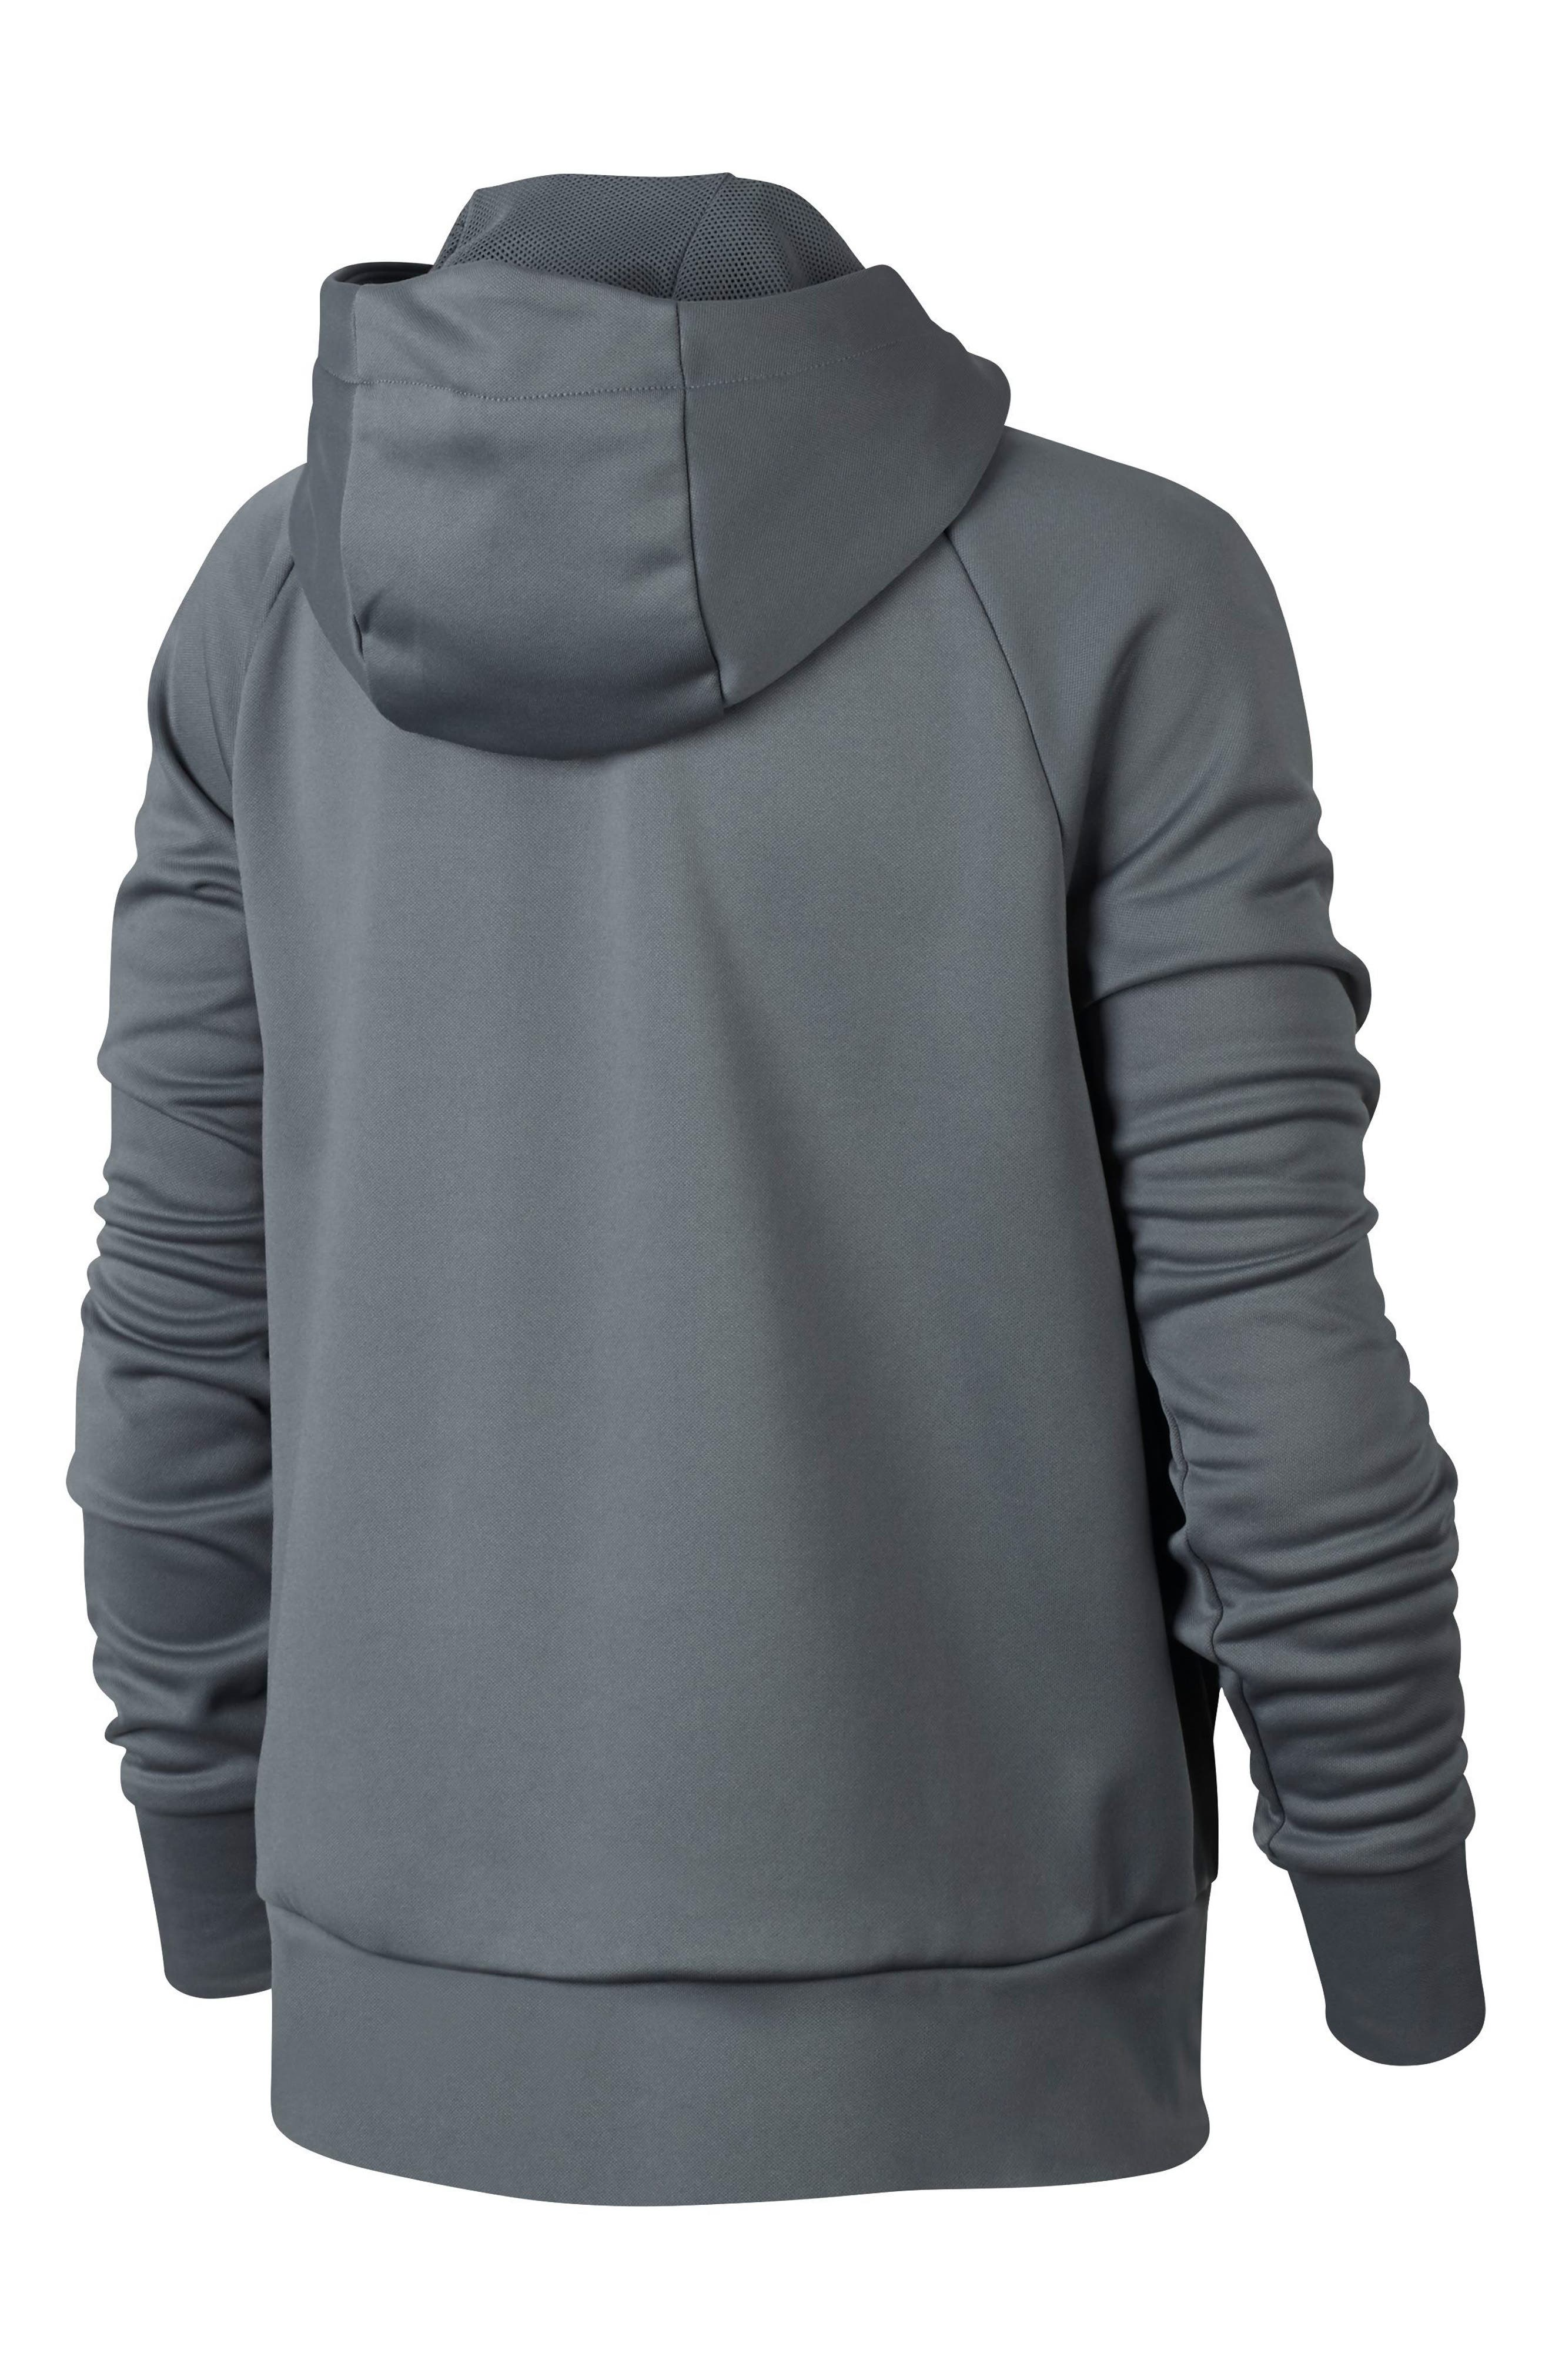 Therma Dry Hoodie,                             Alternate thumbnail 5, color,